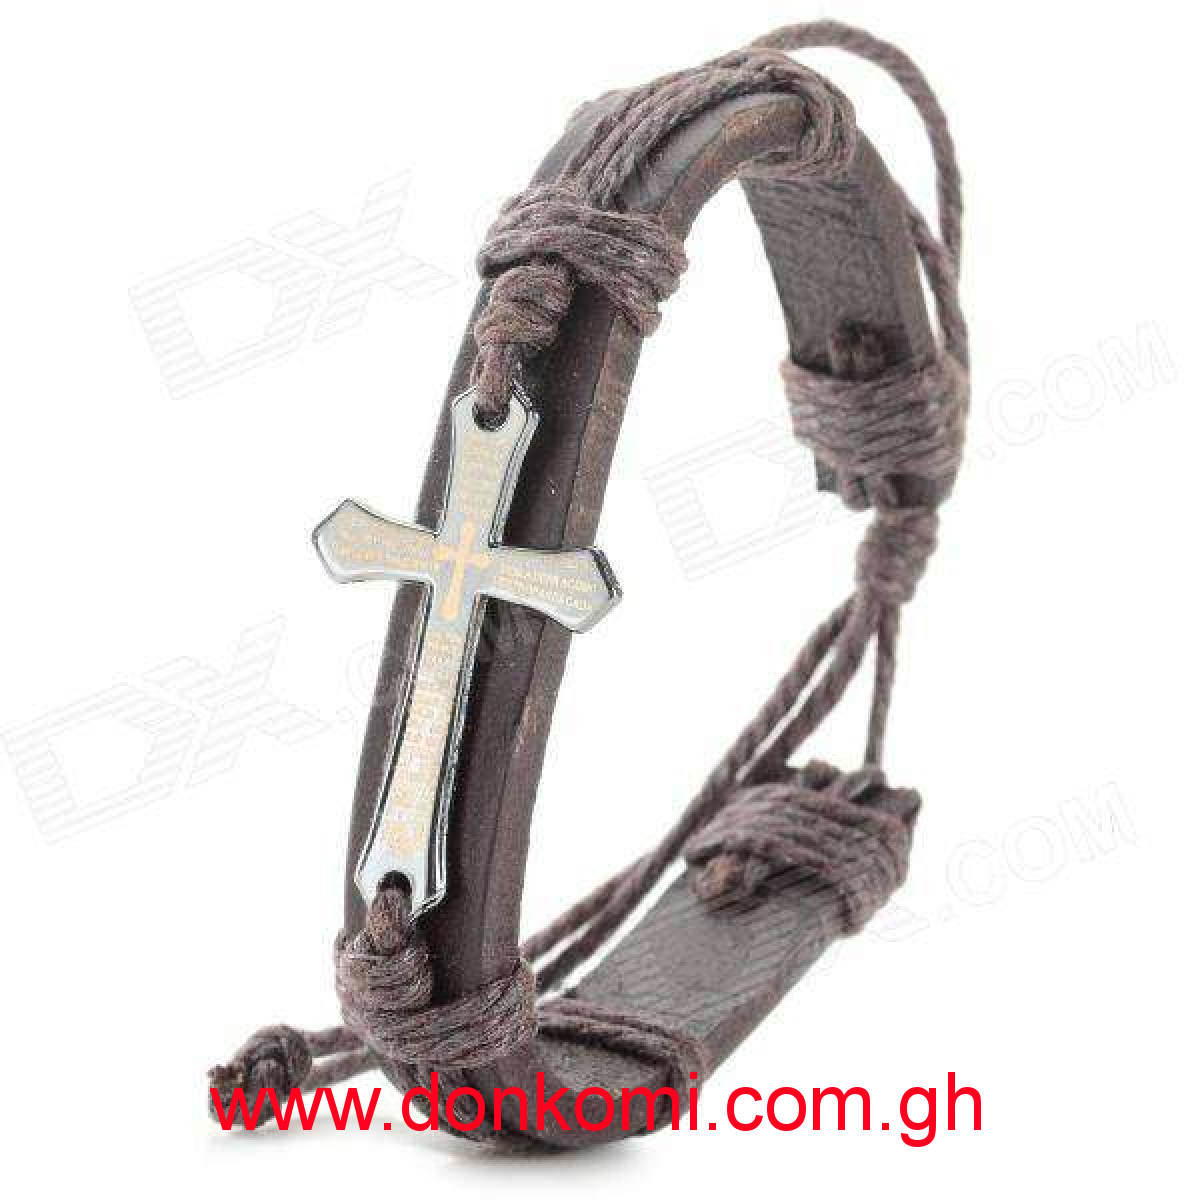 Stylish Bible Cross Style Zinc Alloy + Split Leather Bracelet - Brown